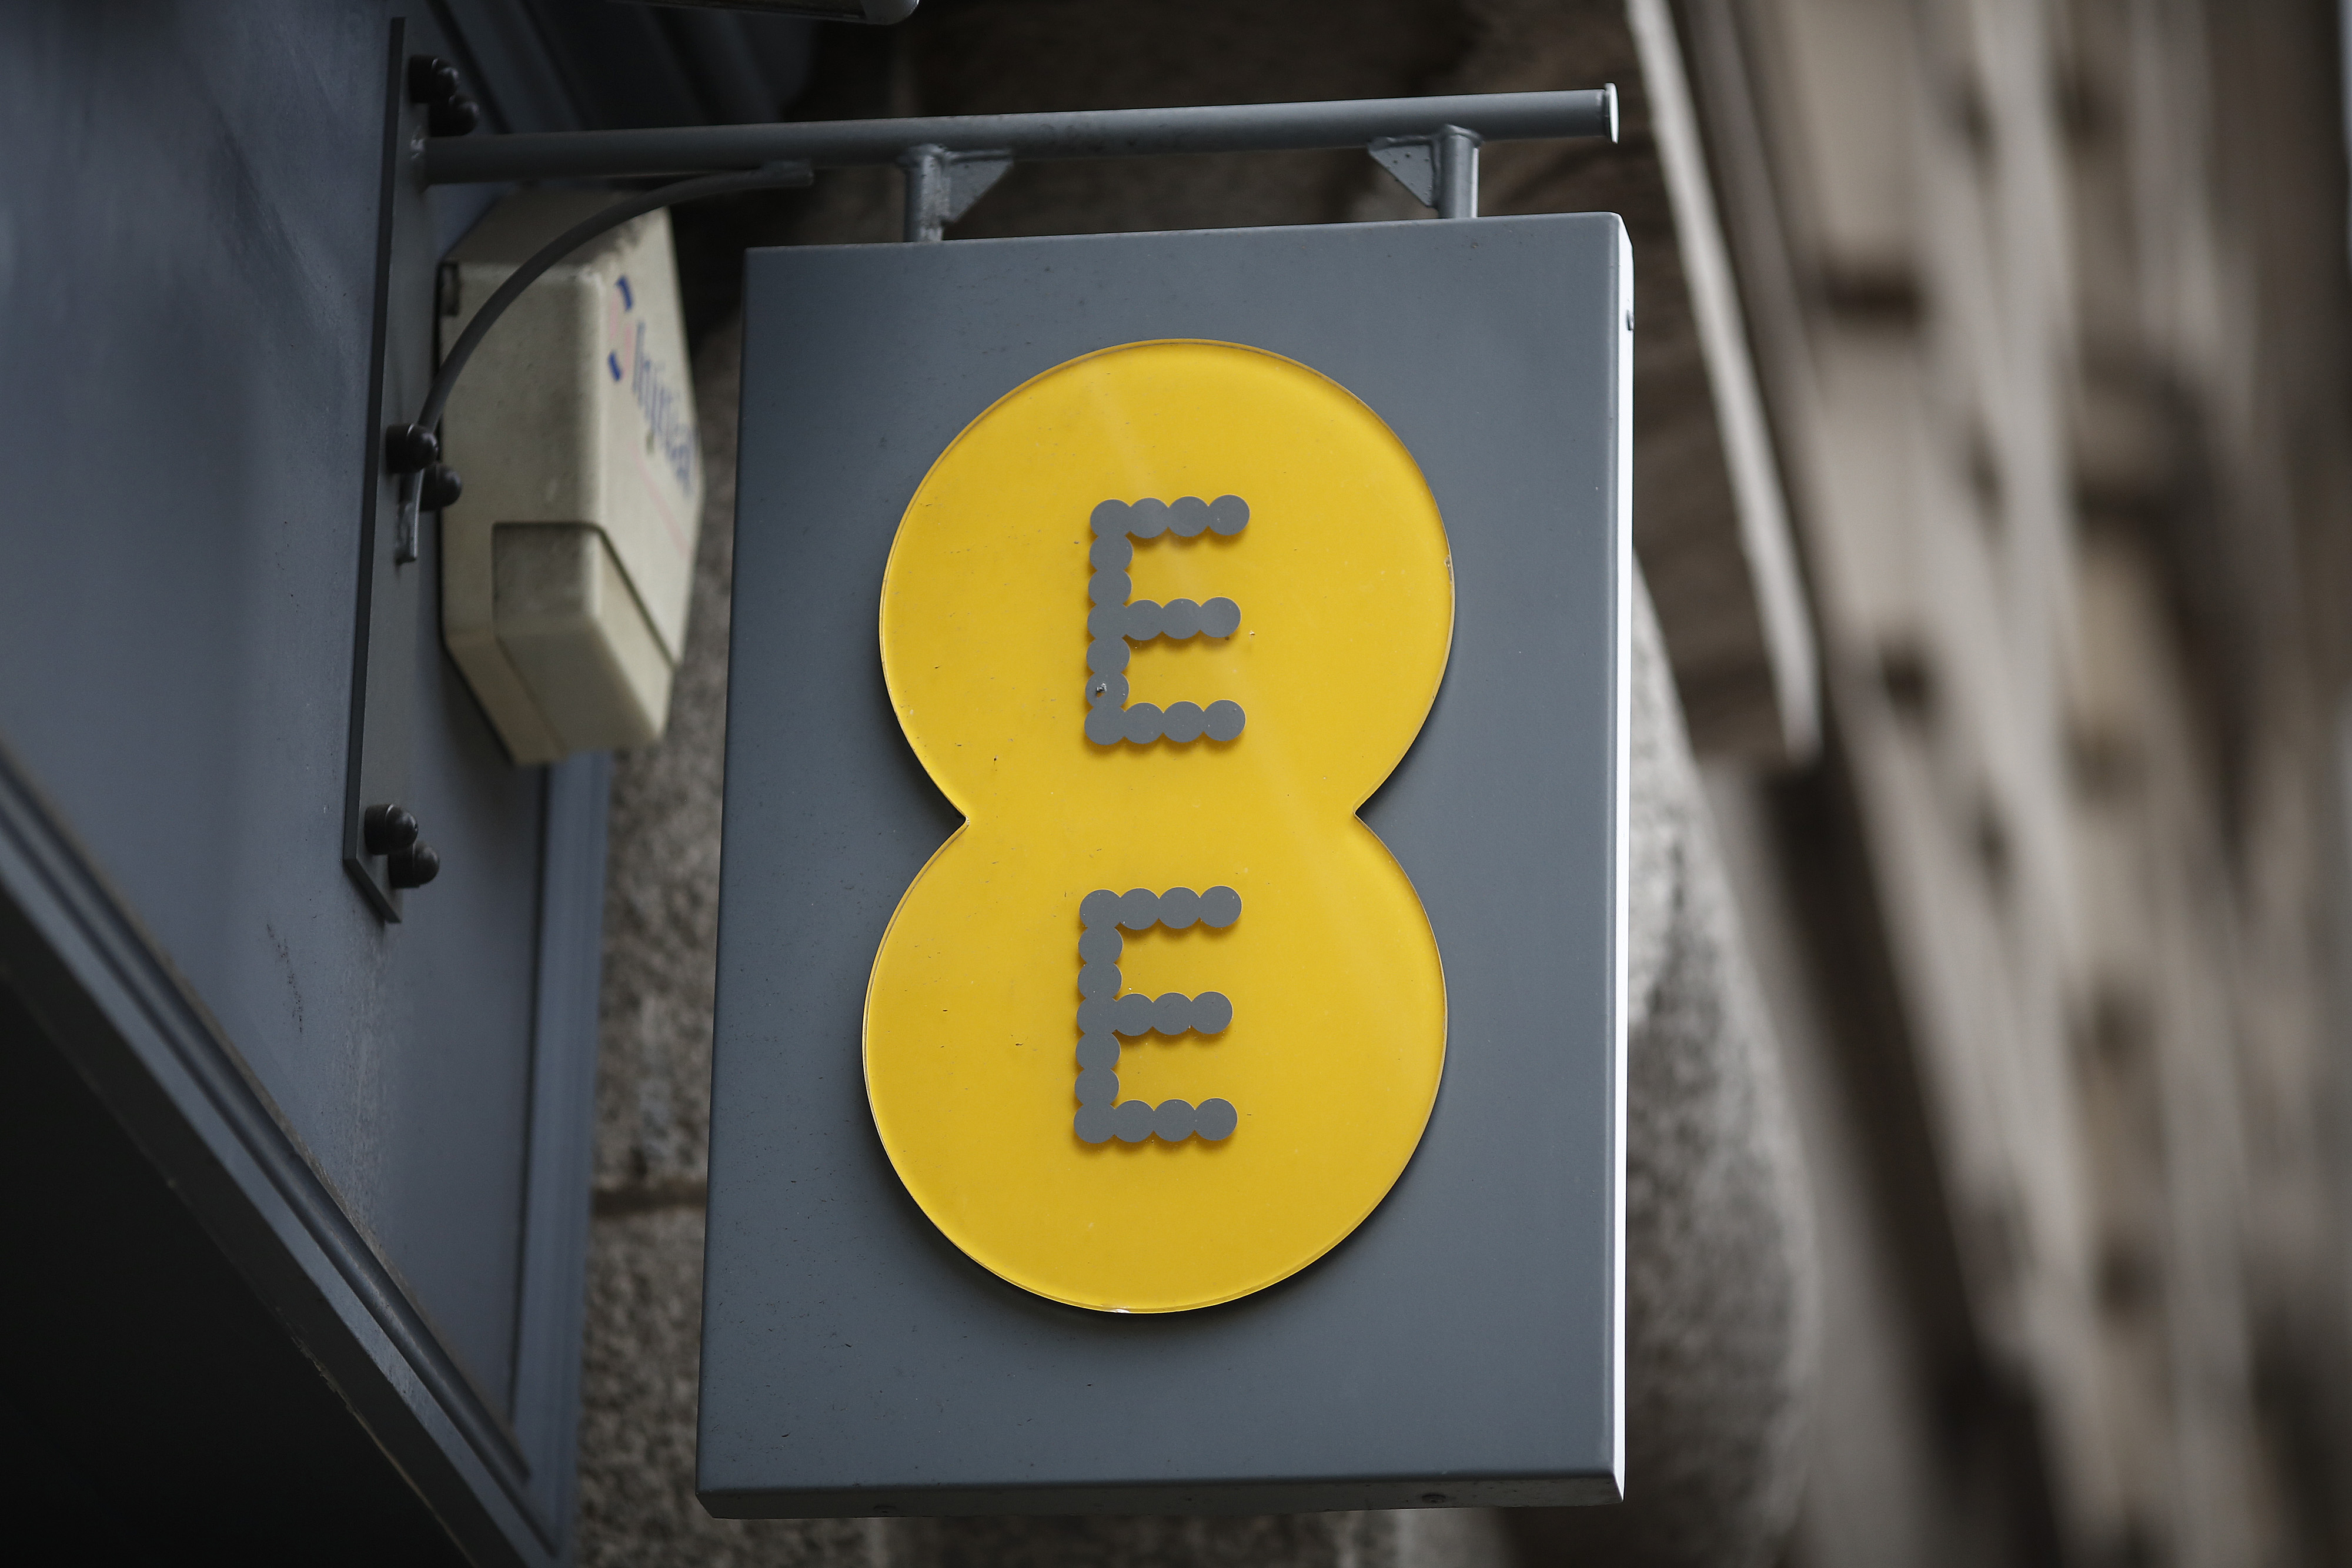 The company logo hangs on a sign outside an EE mobile phone store in London, U.K., on Tuesday, Dec. 24, 2013.